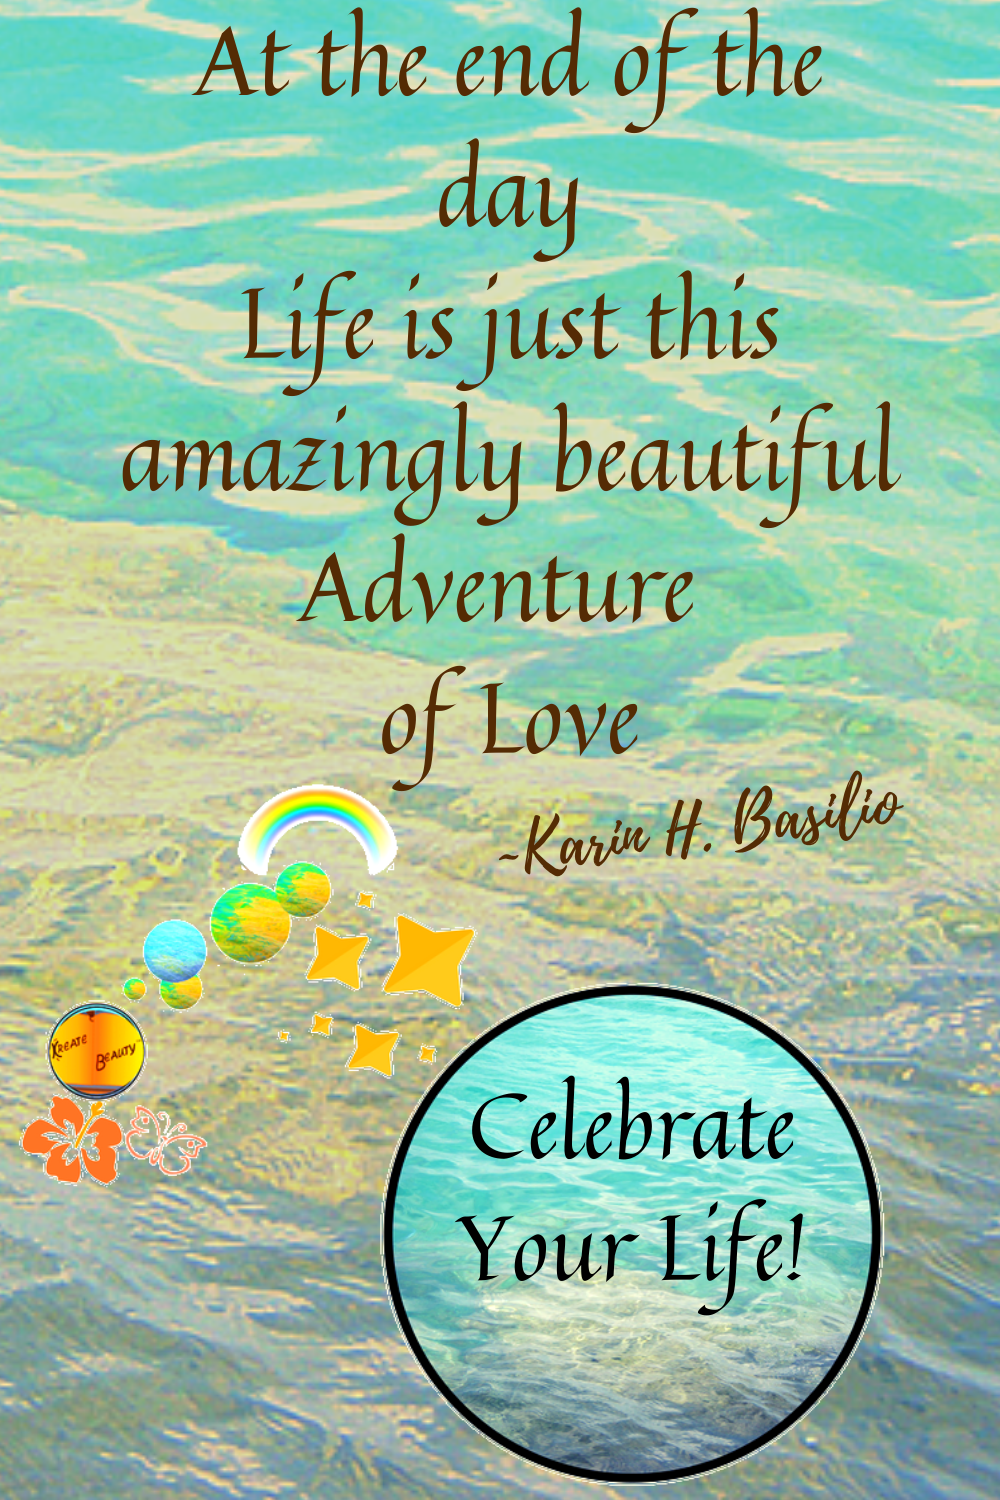 May this quote inspire you to celebrate the beauty of your life even more. Celebrate the magic of life. Keep moving within the vision of your own life. Design the life that you love xoxo #thebeautyoflifequotes, #lifeisanadventure, #lifeislovequotes